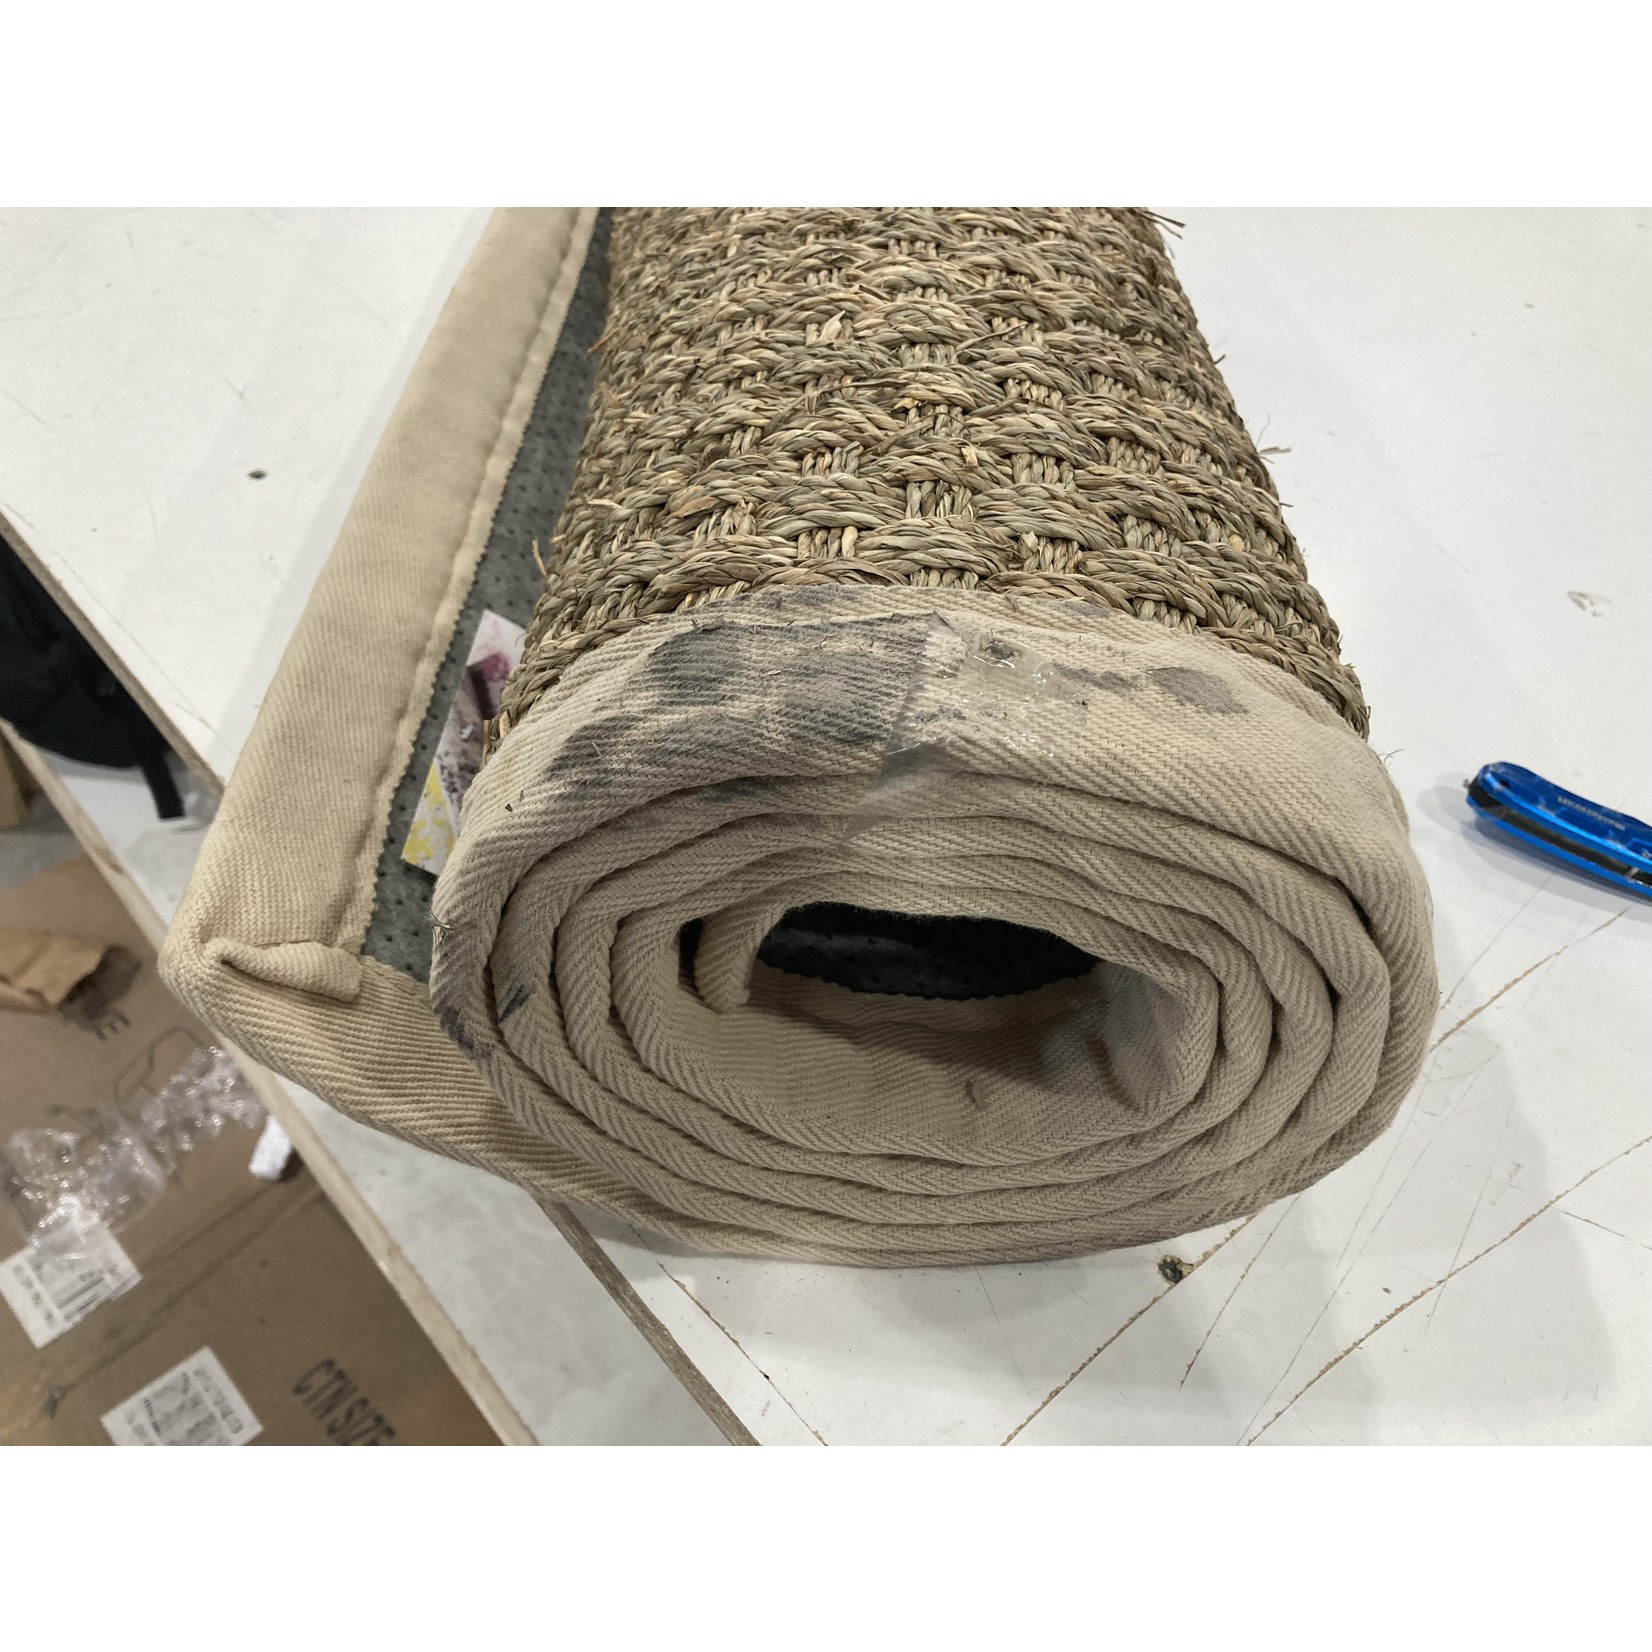 *6' x 9' - Grassmere Natural/Ivory Area Rug - Dirt on edge